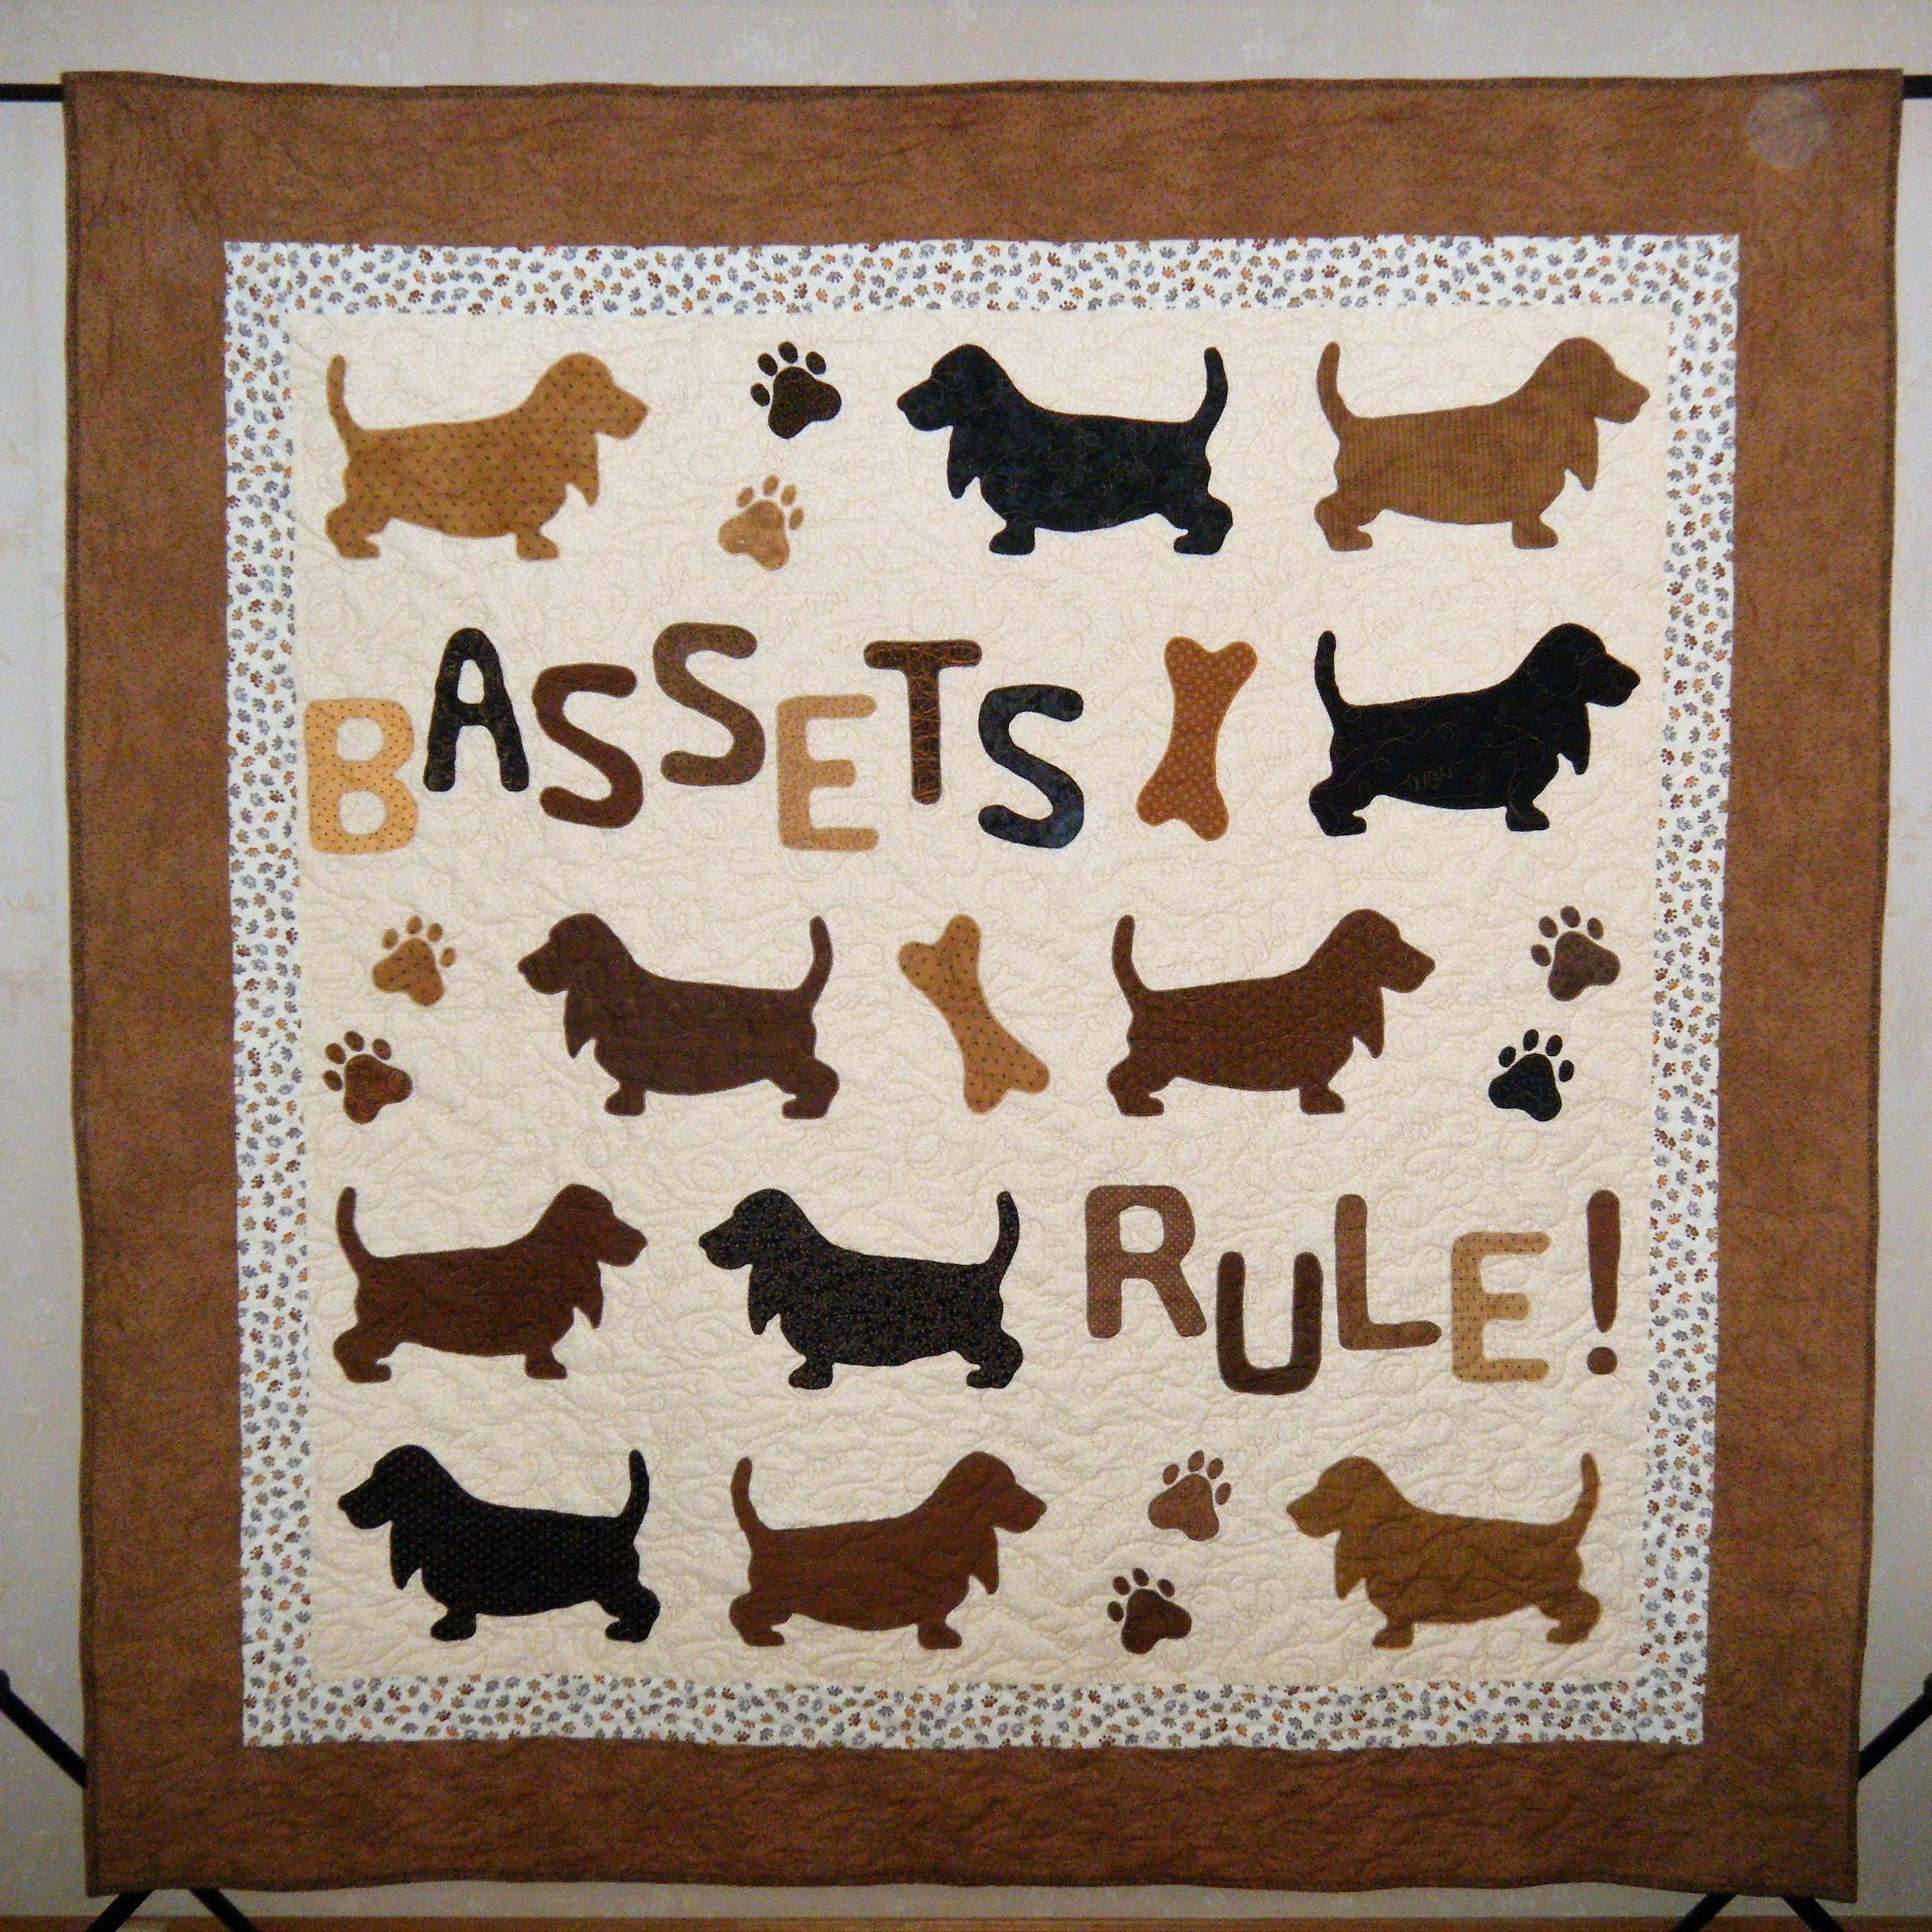 Dog Themed Quilts Pillows Accessories 4 Pet By Doodlebugquilts